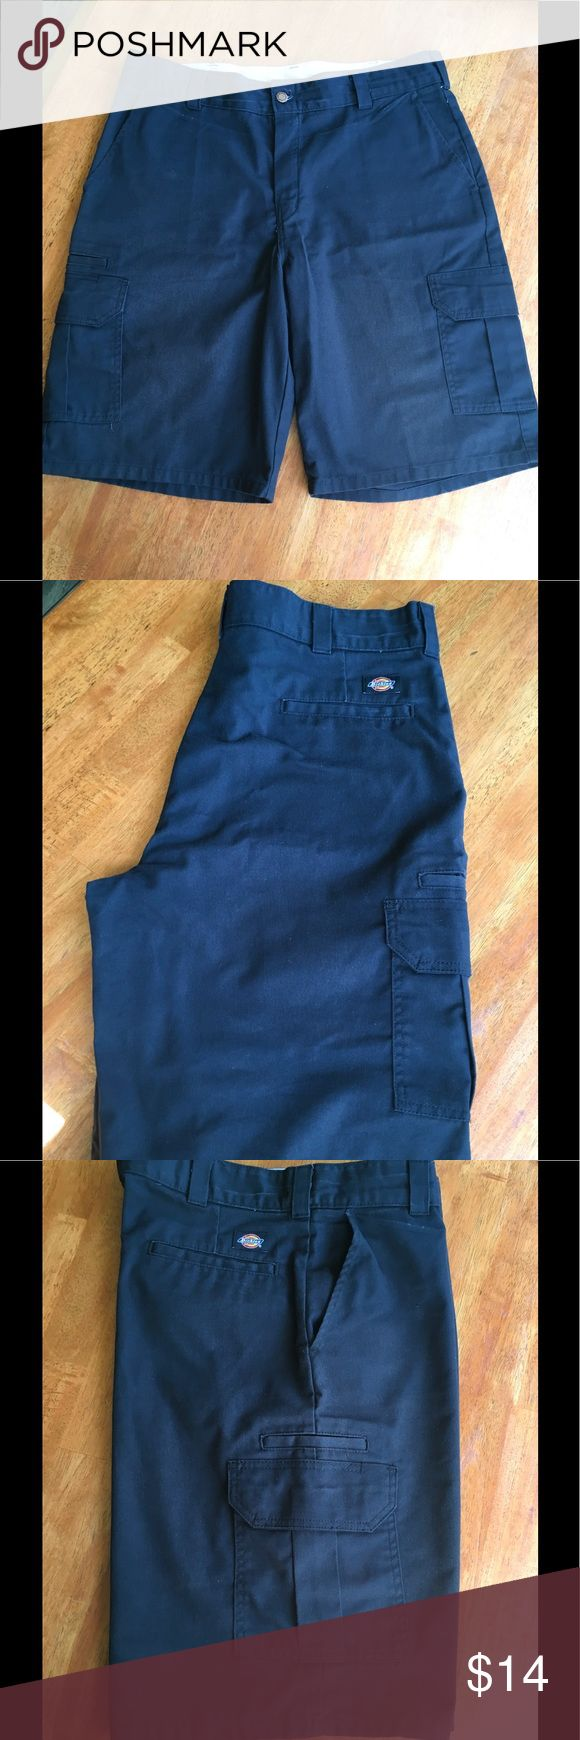 Men's Navy Dickies Cargo Shorts Gently used, but still in great condition Dickies Shorts Cargo